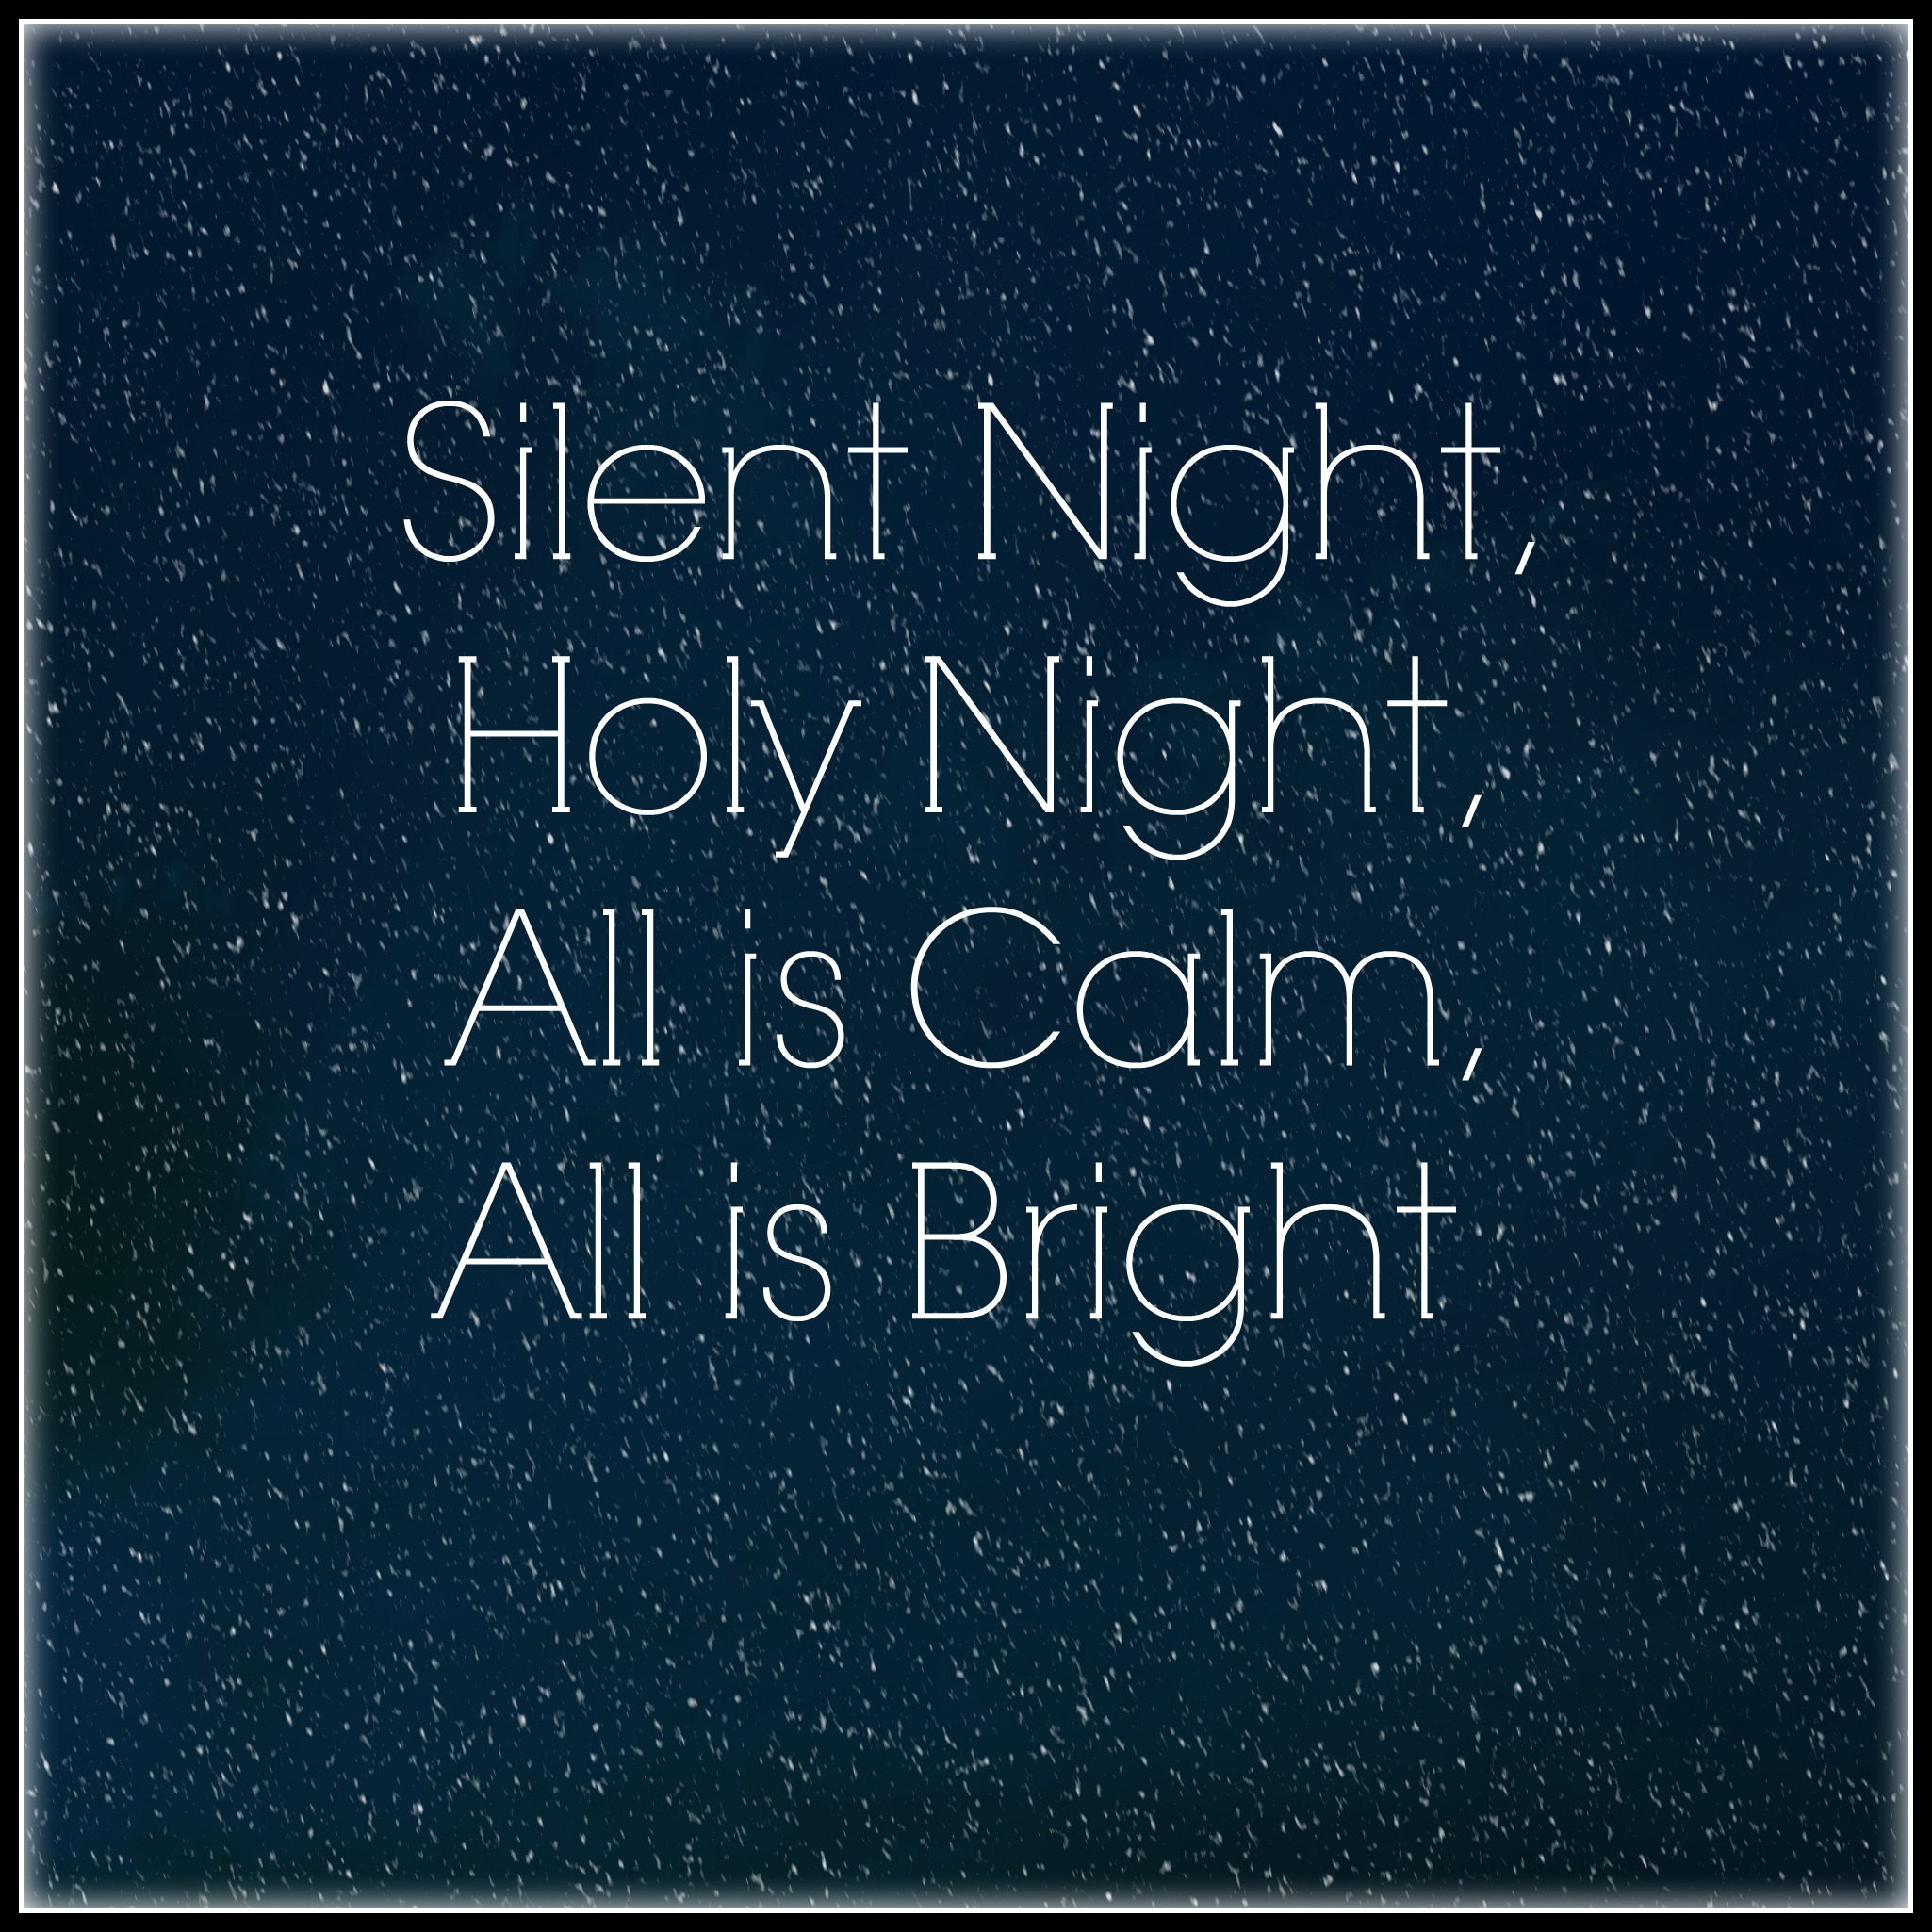 Night Quotes About Silence. QuotesGram